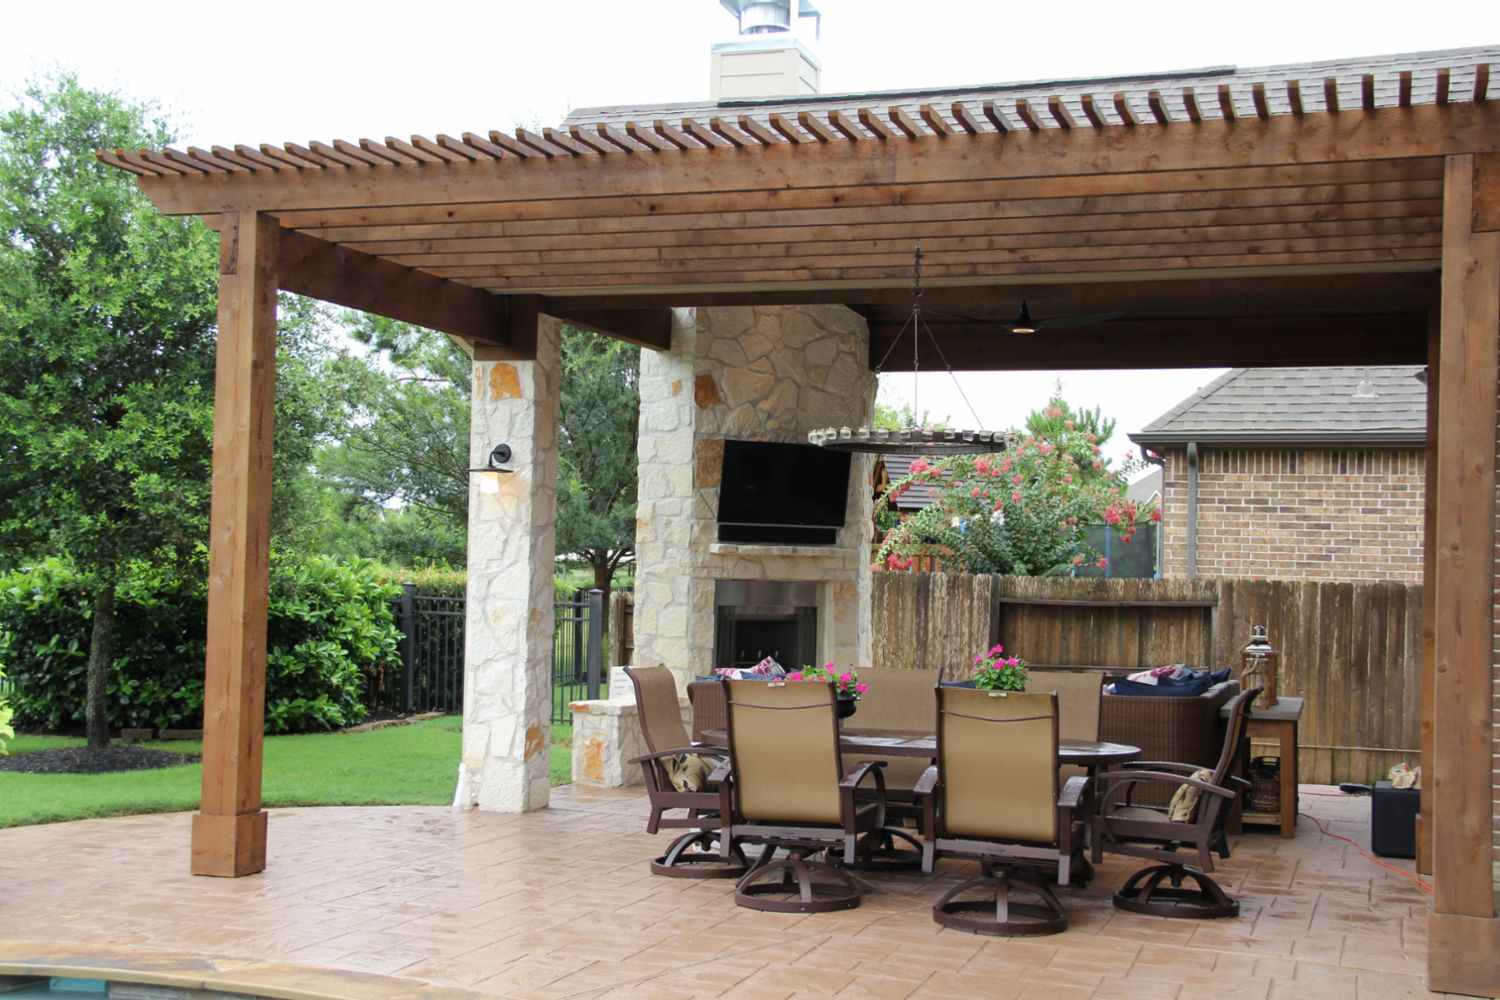 Patio Covers, Outdoor Kitchens, Fire Features in Katy, TX ... on Covered Outdoor Kitchen With Fireplace id=15816